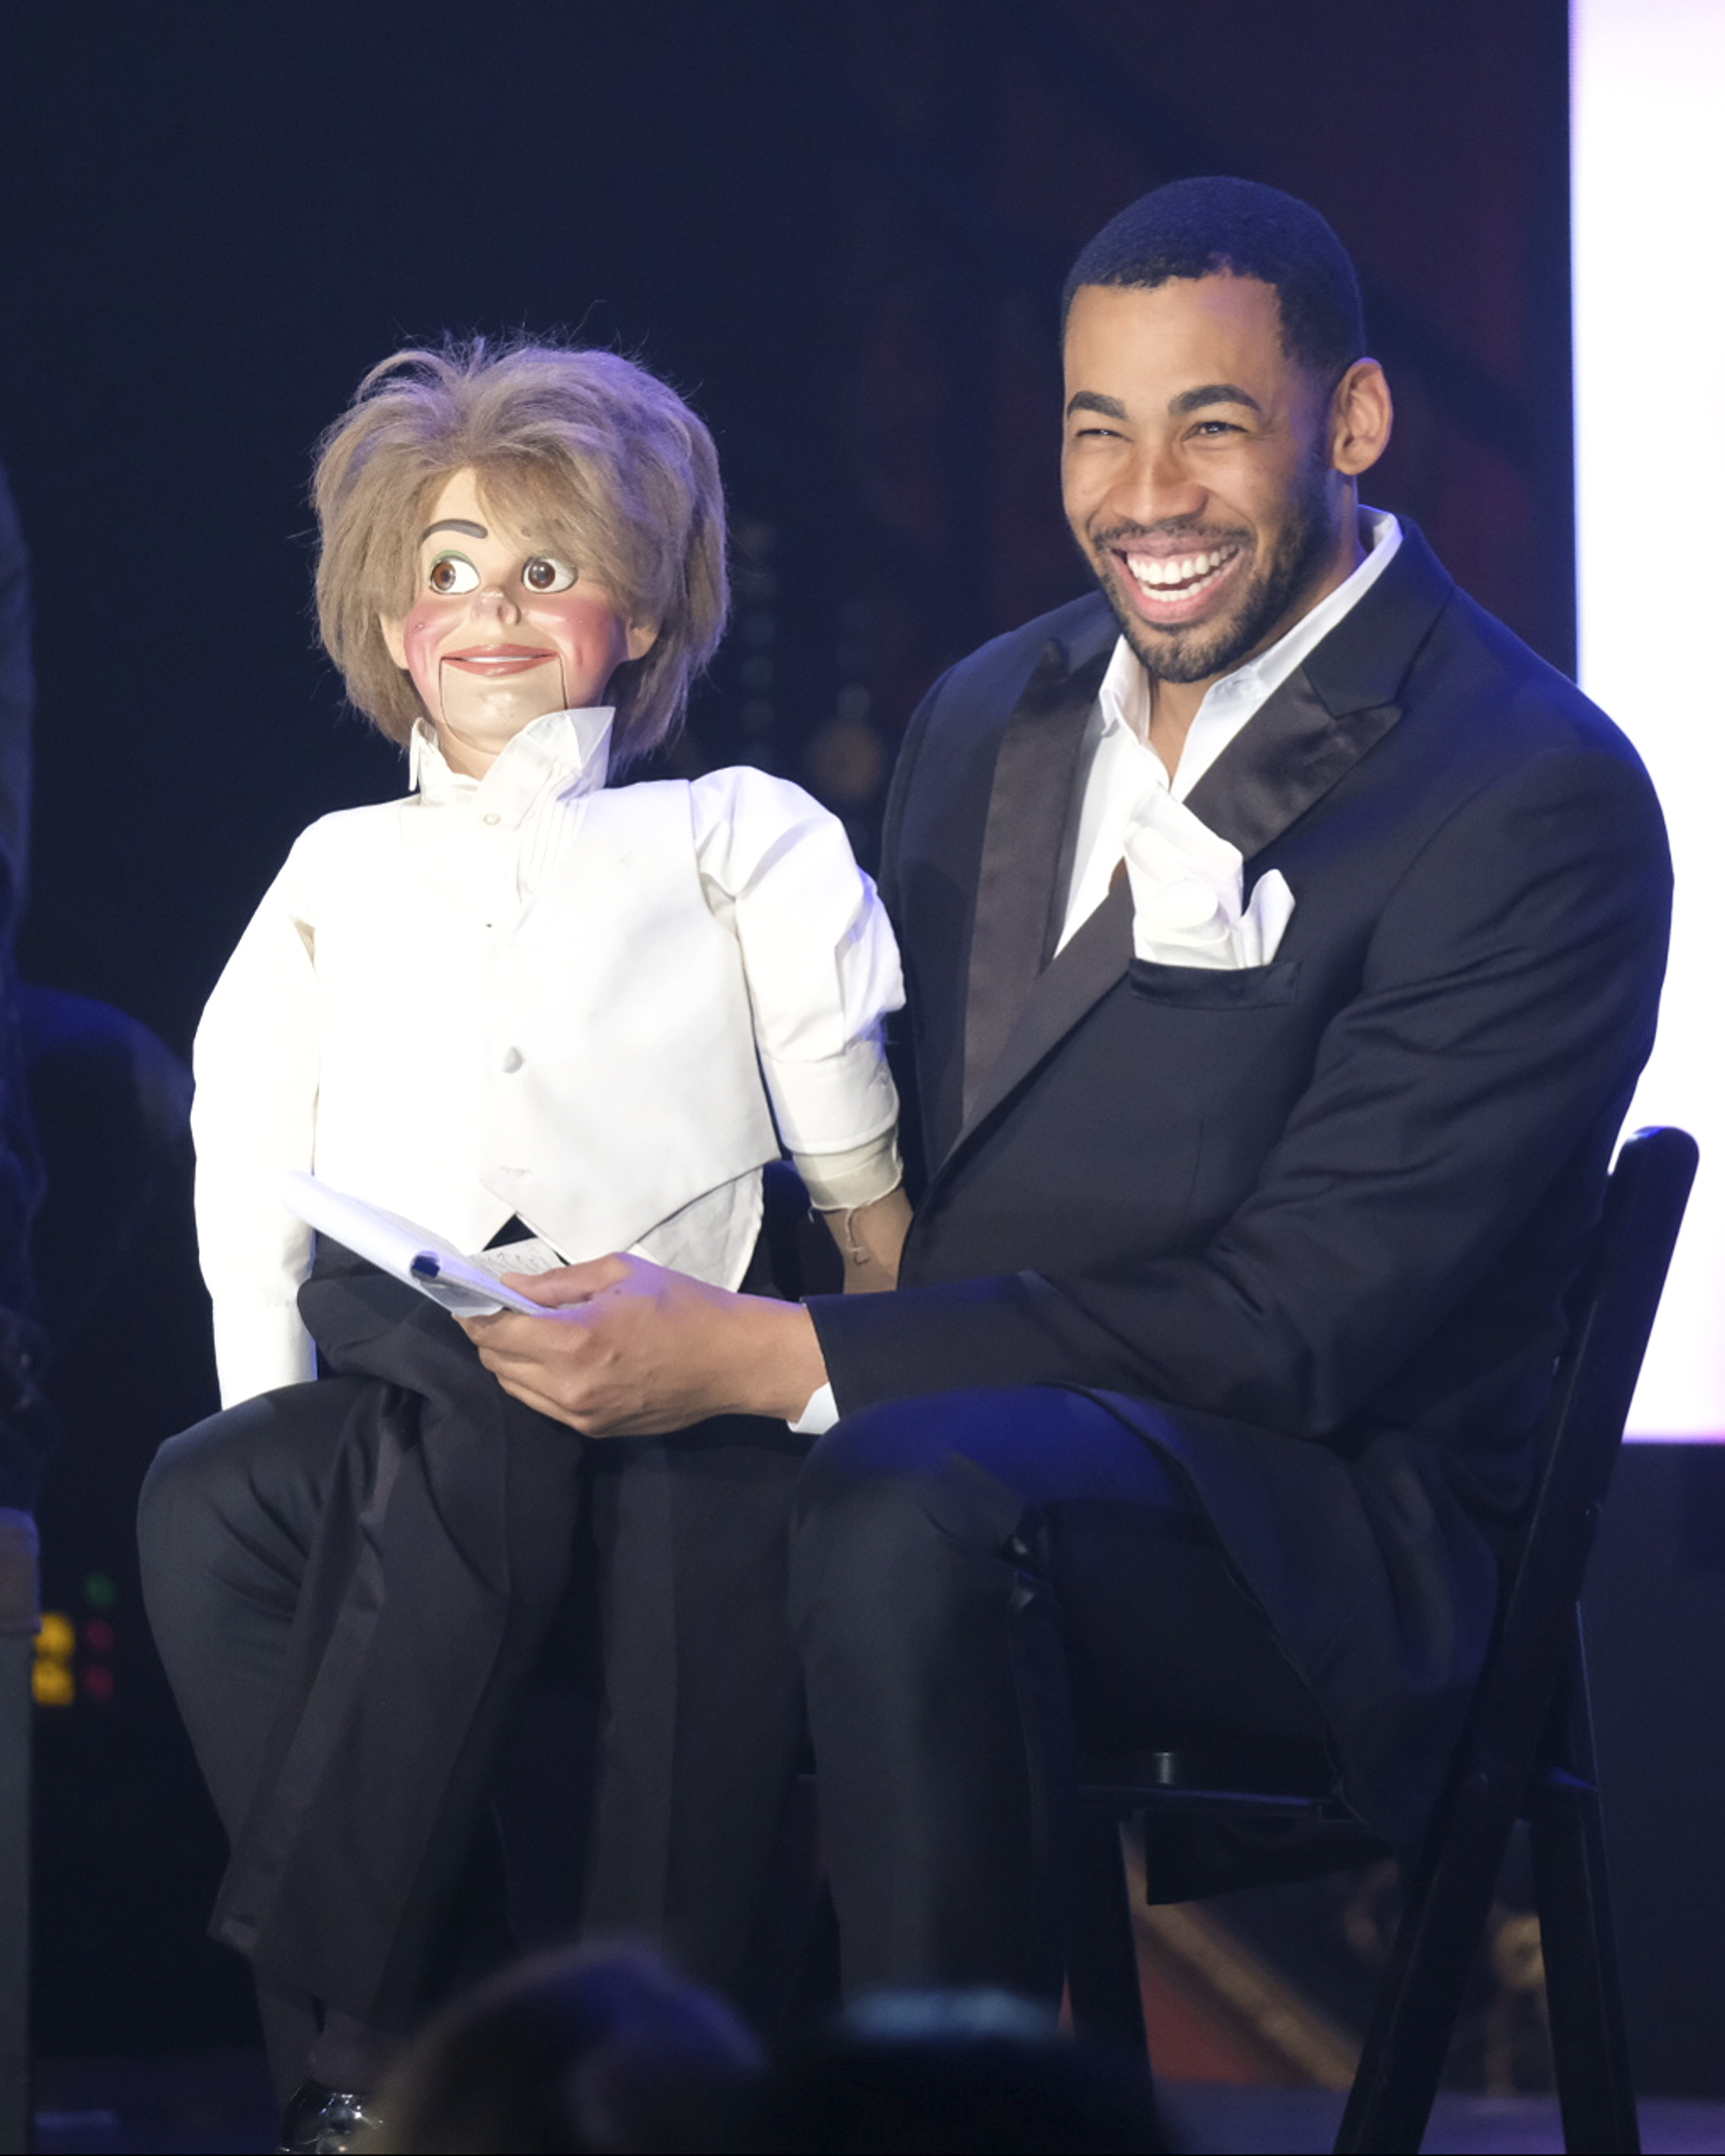 It wouldn't be a talent show without a slightly terrifying ventriloquy act so thanks Mike for providing that! (Image: John Fleenor/ ABC)